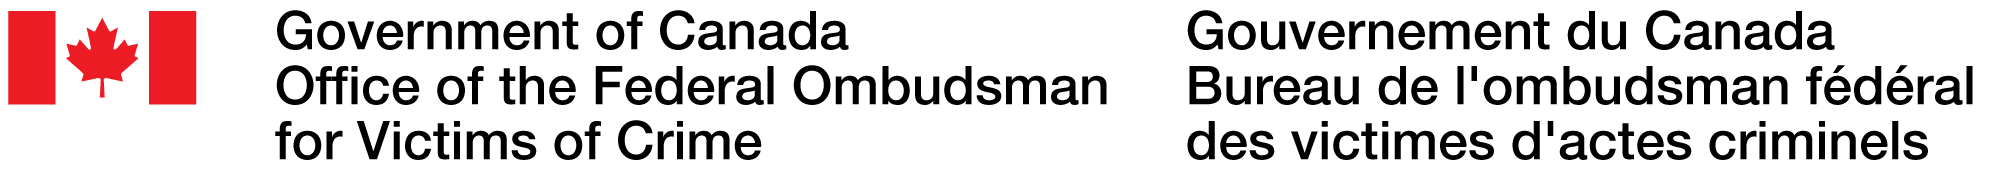 Federal Ombudsman for Victims of Crime